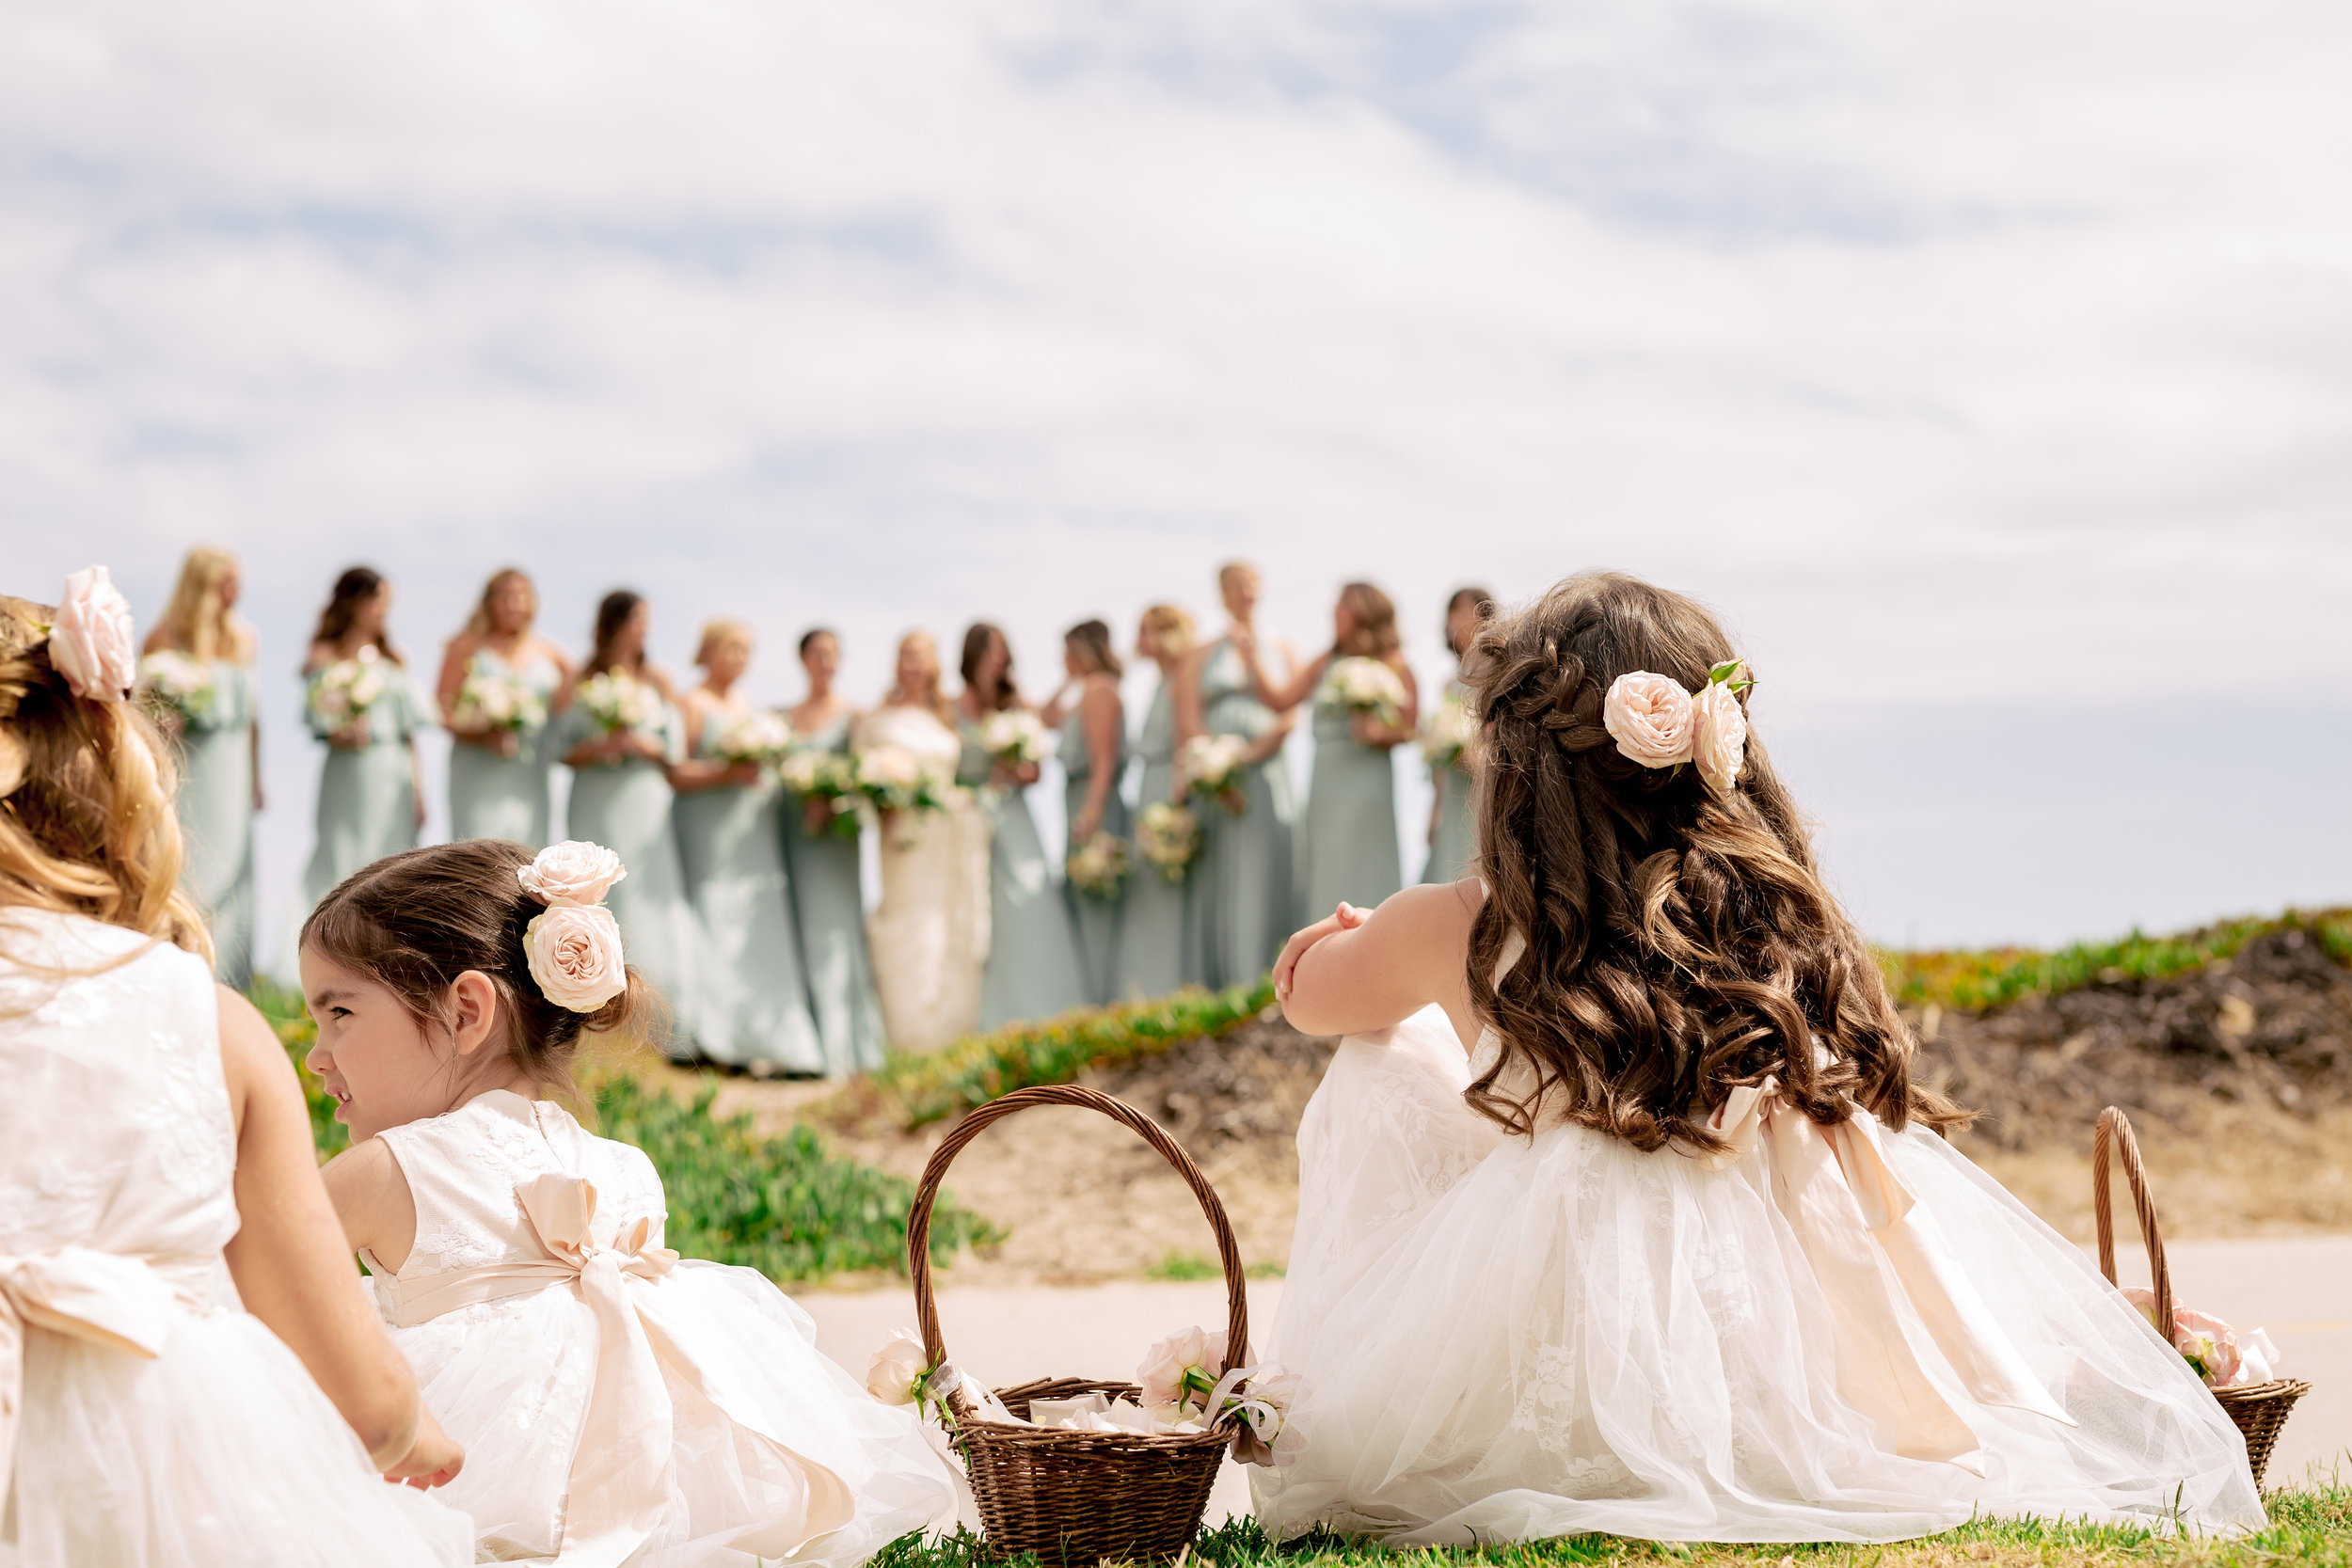 www.santabarbarawedding.com | Rewind Photography | Events by M and M | Santa Barbara Historical Museum | Bridesmaids and Flower Girls